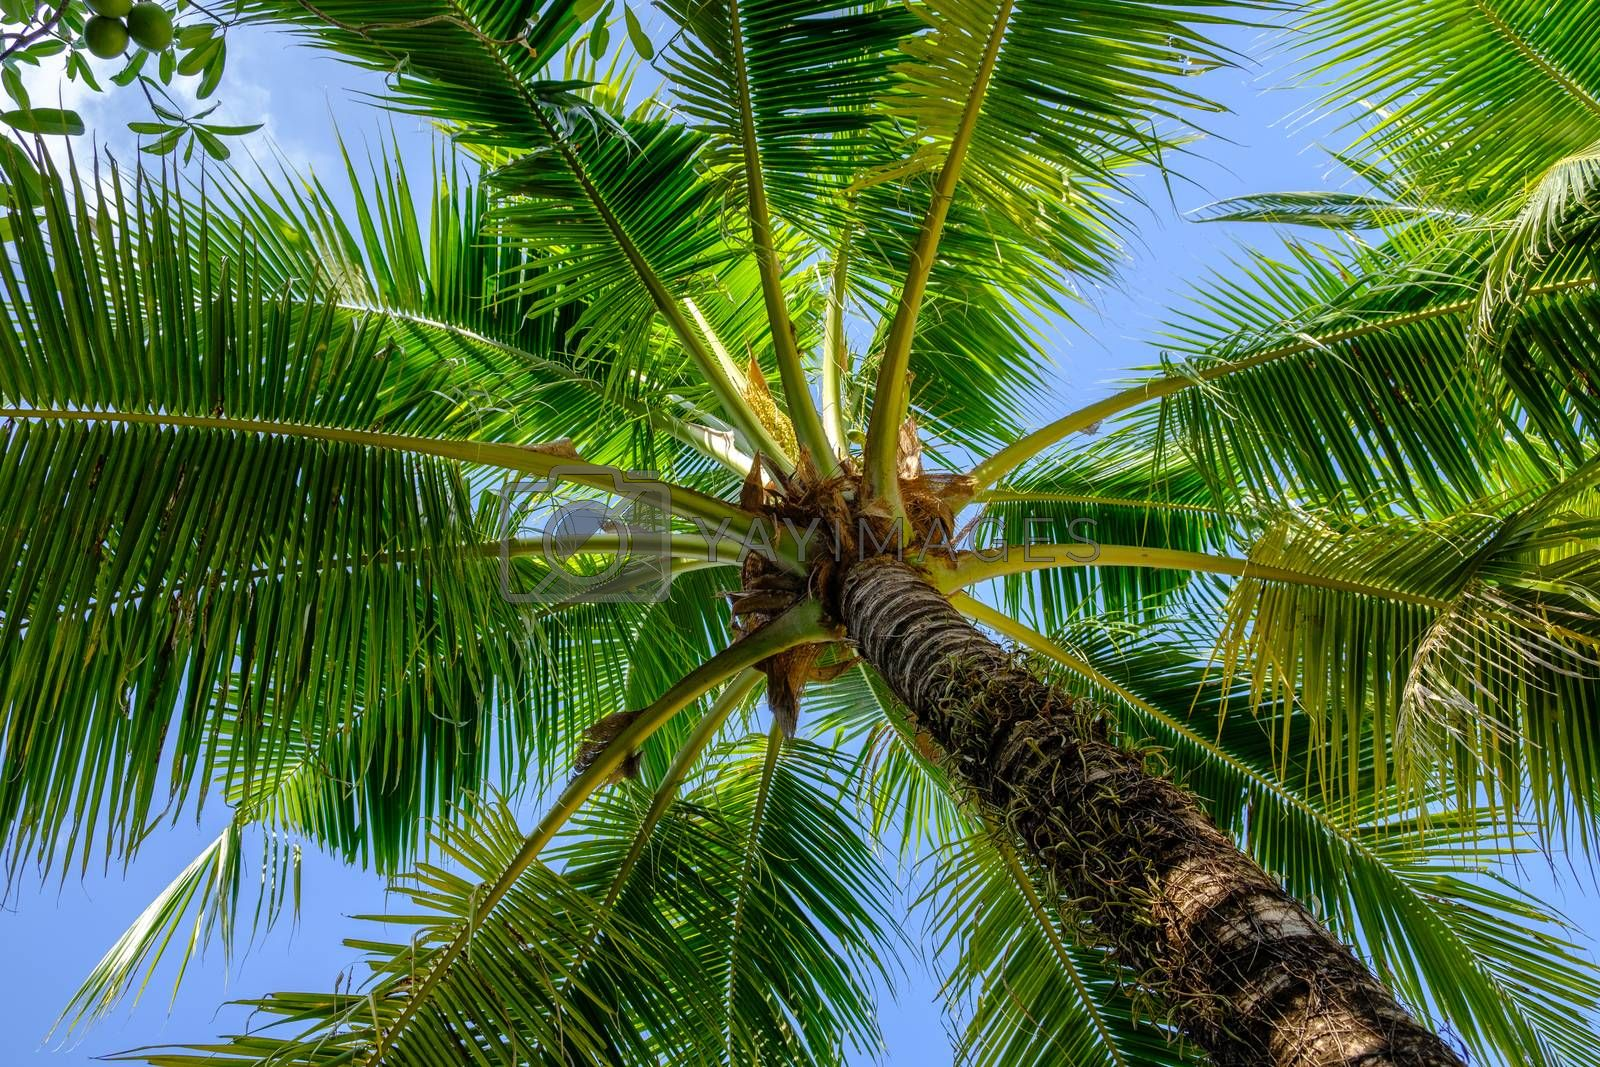 Closeup of branches of coconut palms under blue sky at sunny day. Palm tree view from below summer panoramic background.